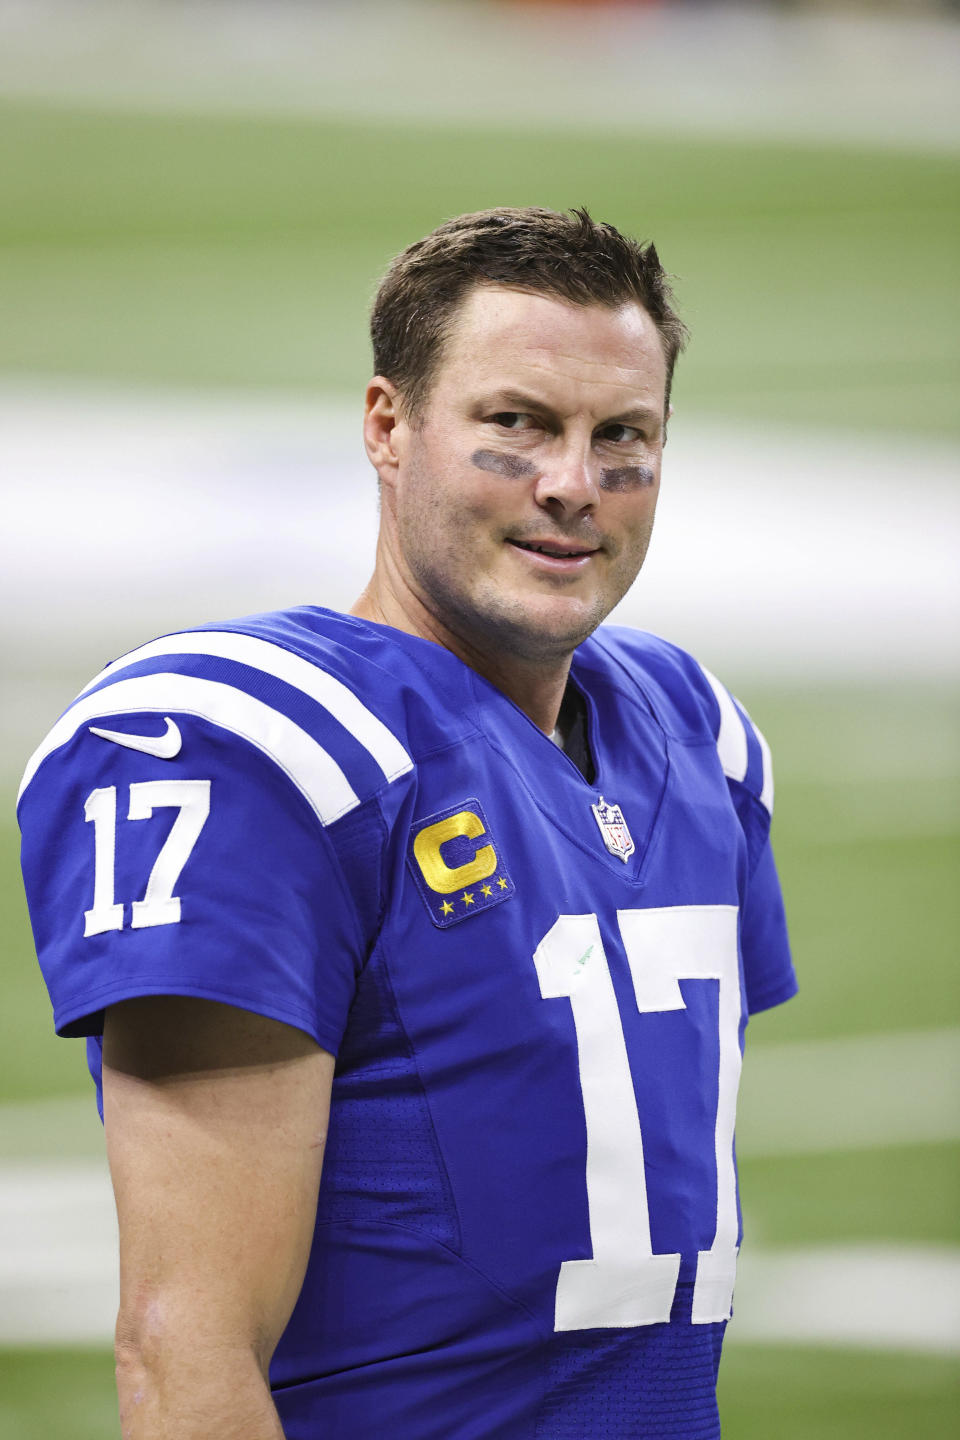 Indianapolis Colts quarterback Philip Rivers (17) prepares for the game in an NFL game against the Green Bay Packers, Sunday, Nov. 22, 2020 in Indianapolis. The Colts defeated the Packers 34-31. (Margaret Bowles via AP)